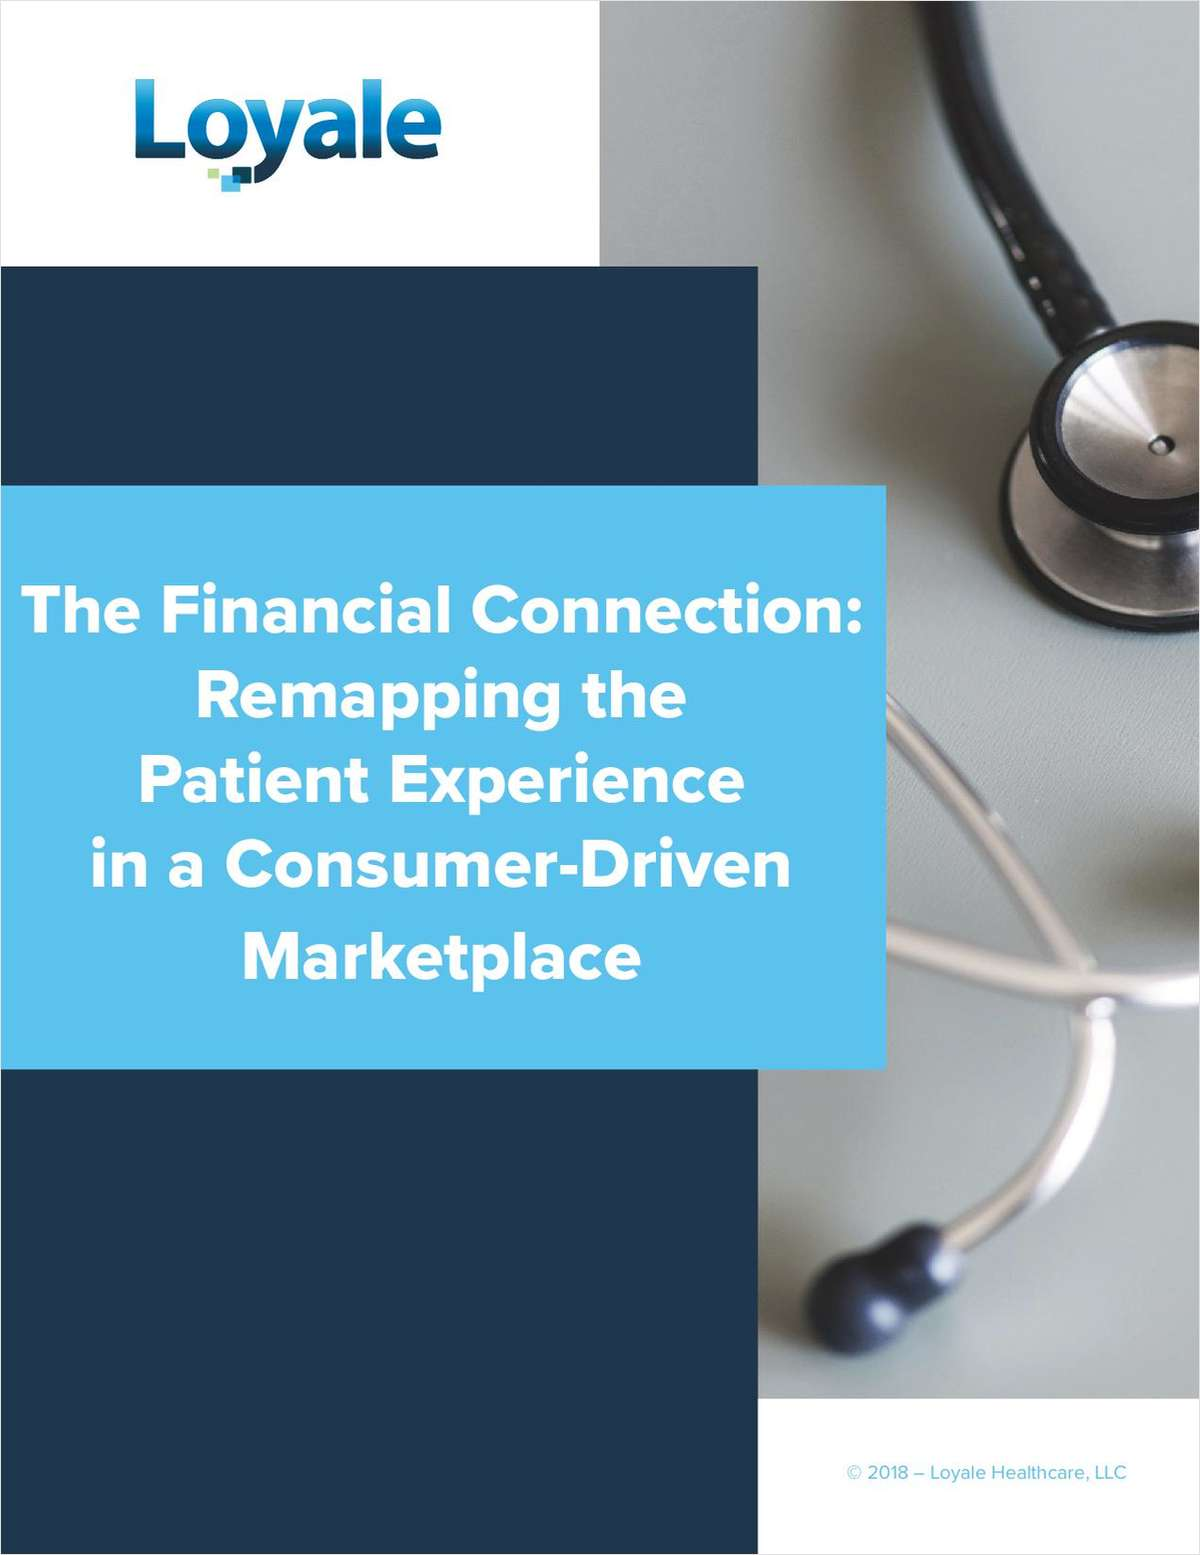 The Financial Connection: Remapping the Patient Experience in a Consumer-Driven Marketplace